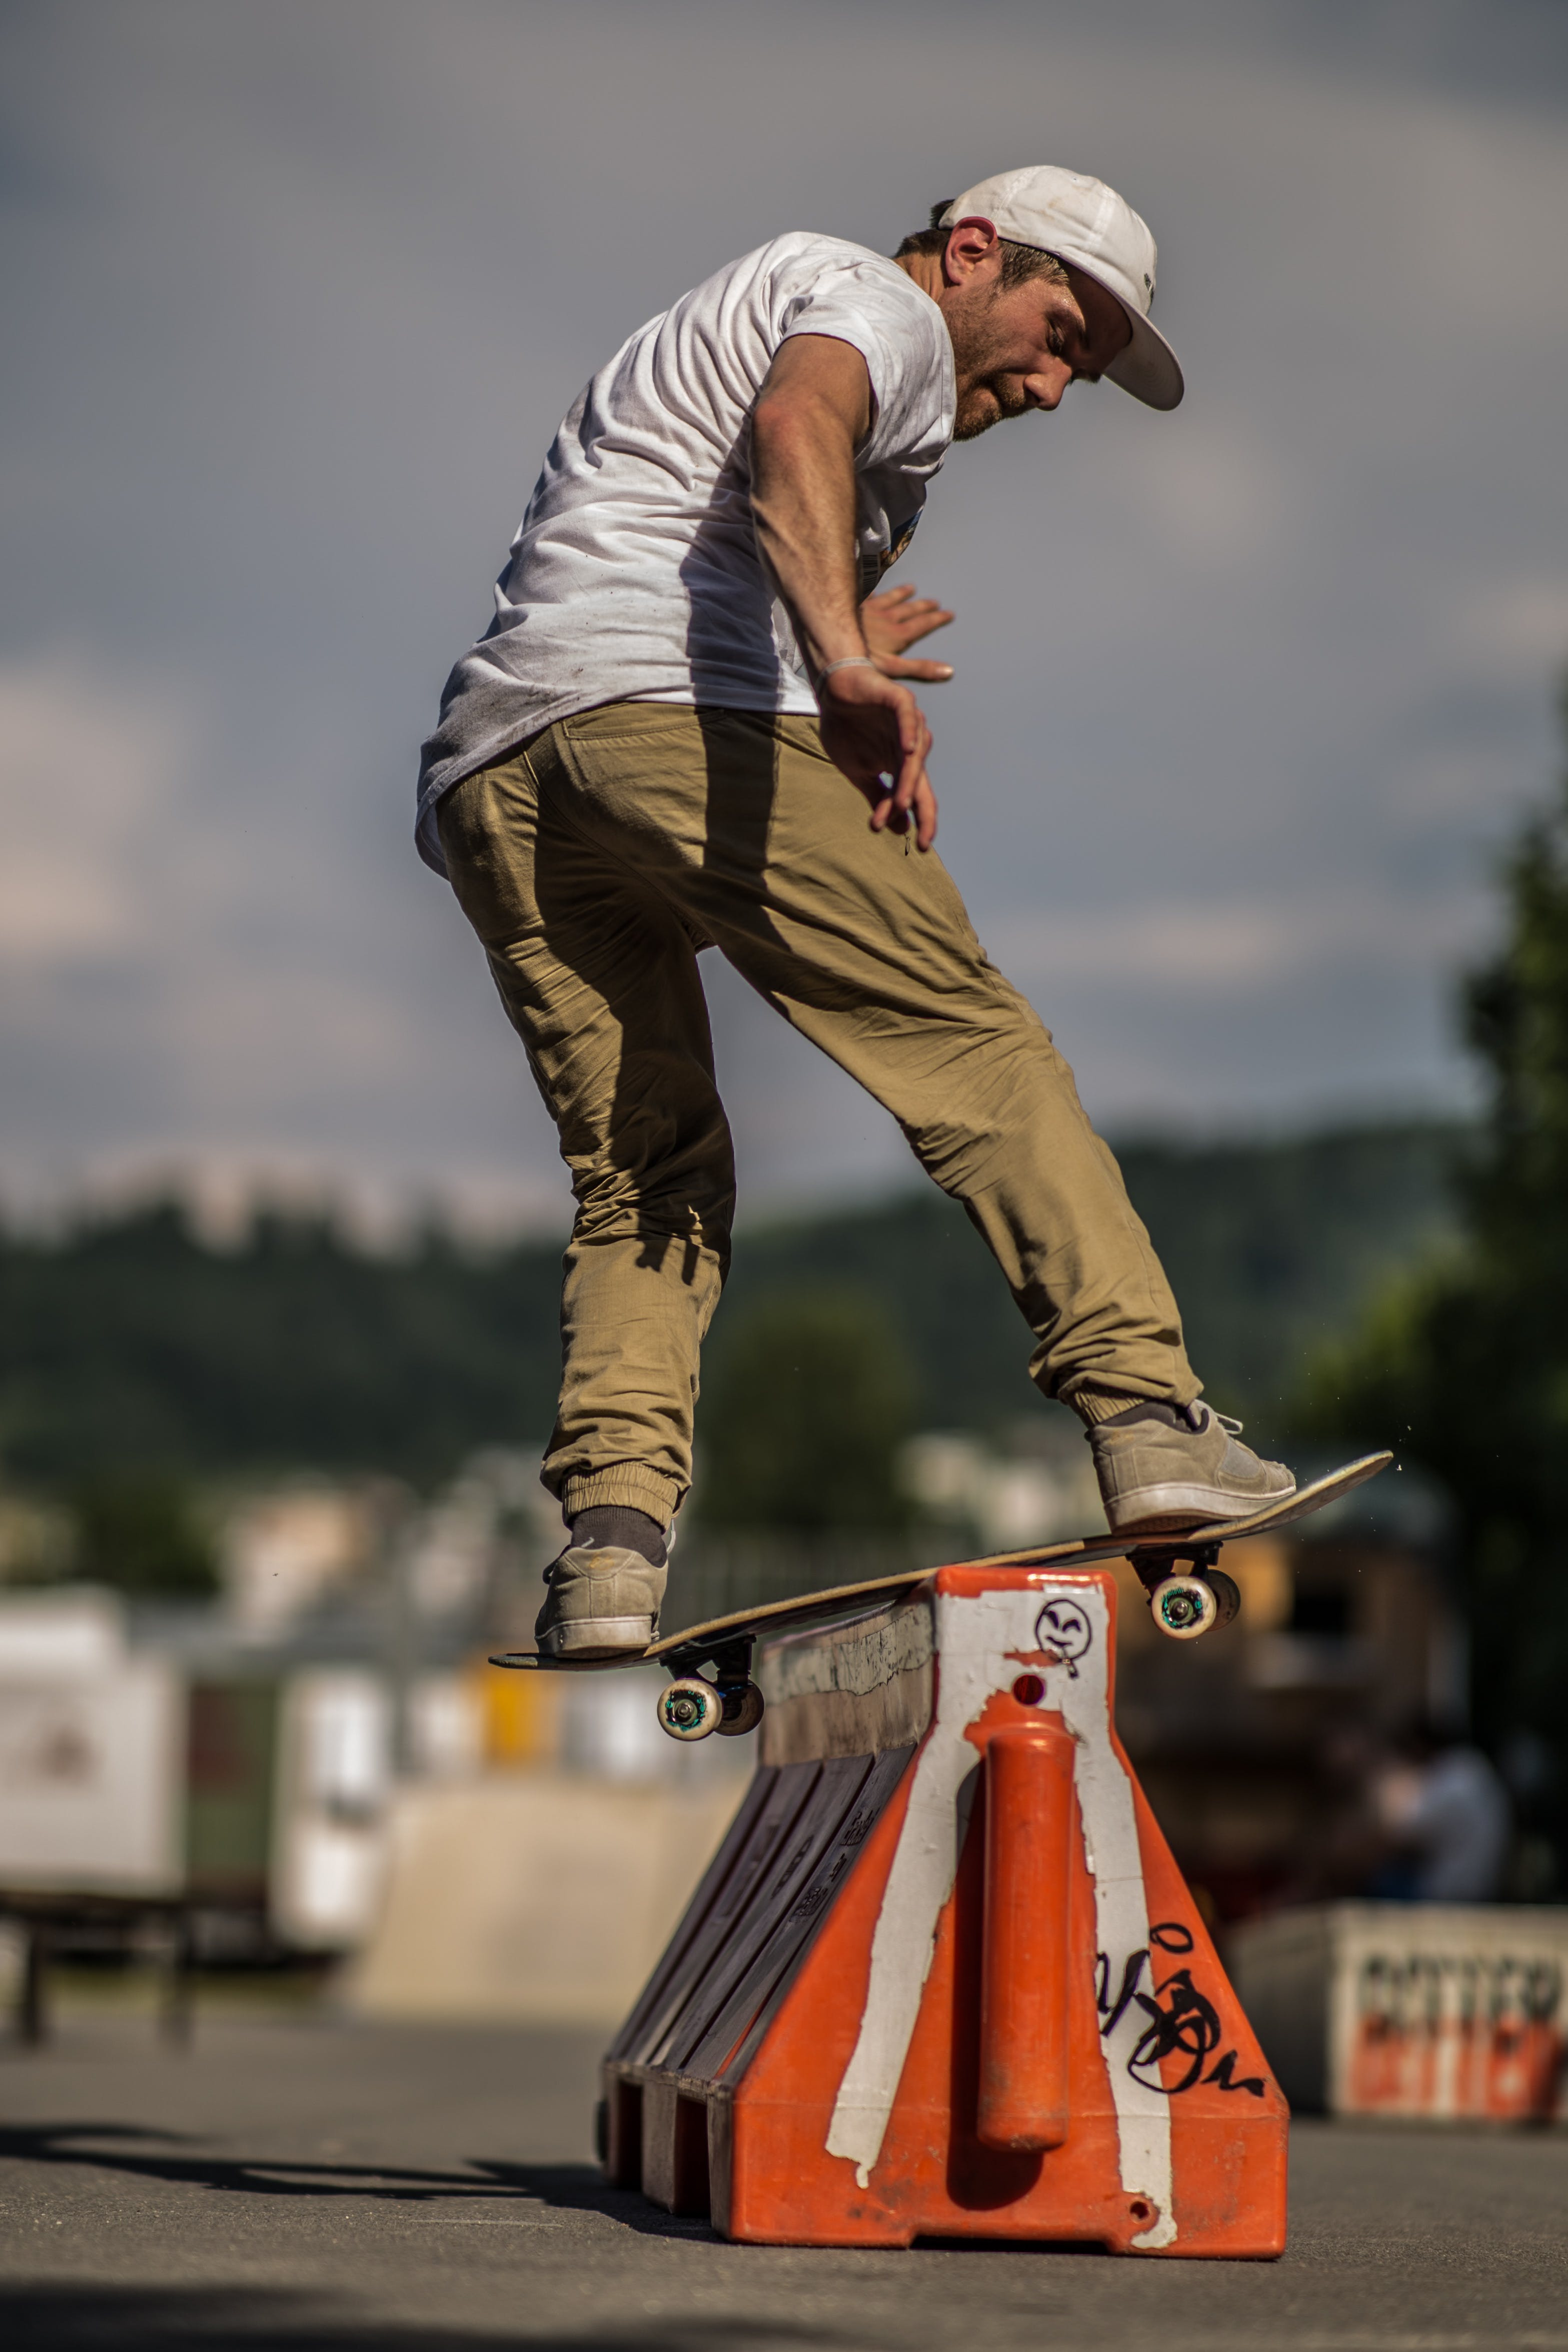 Person Doing Trick on Skateboard